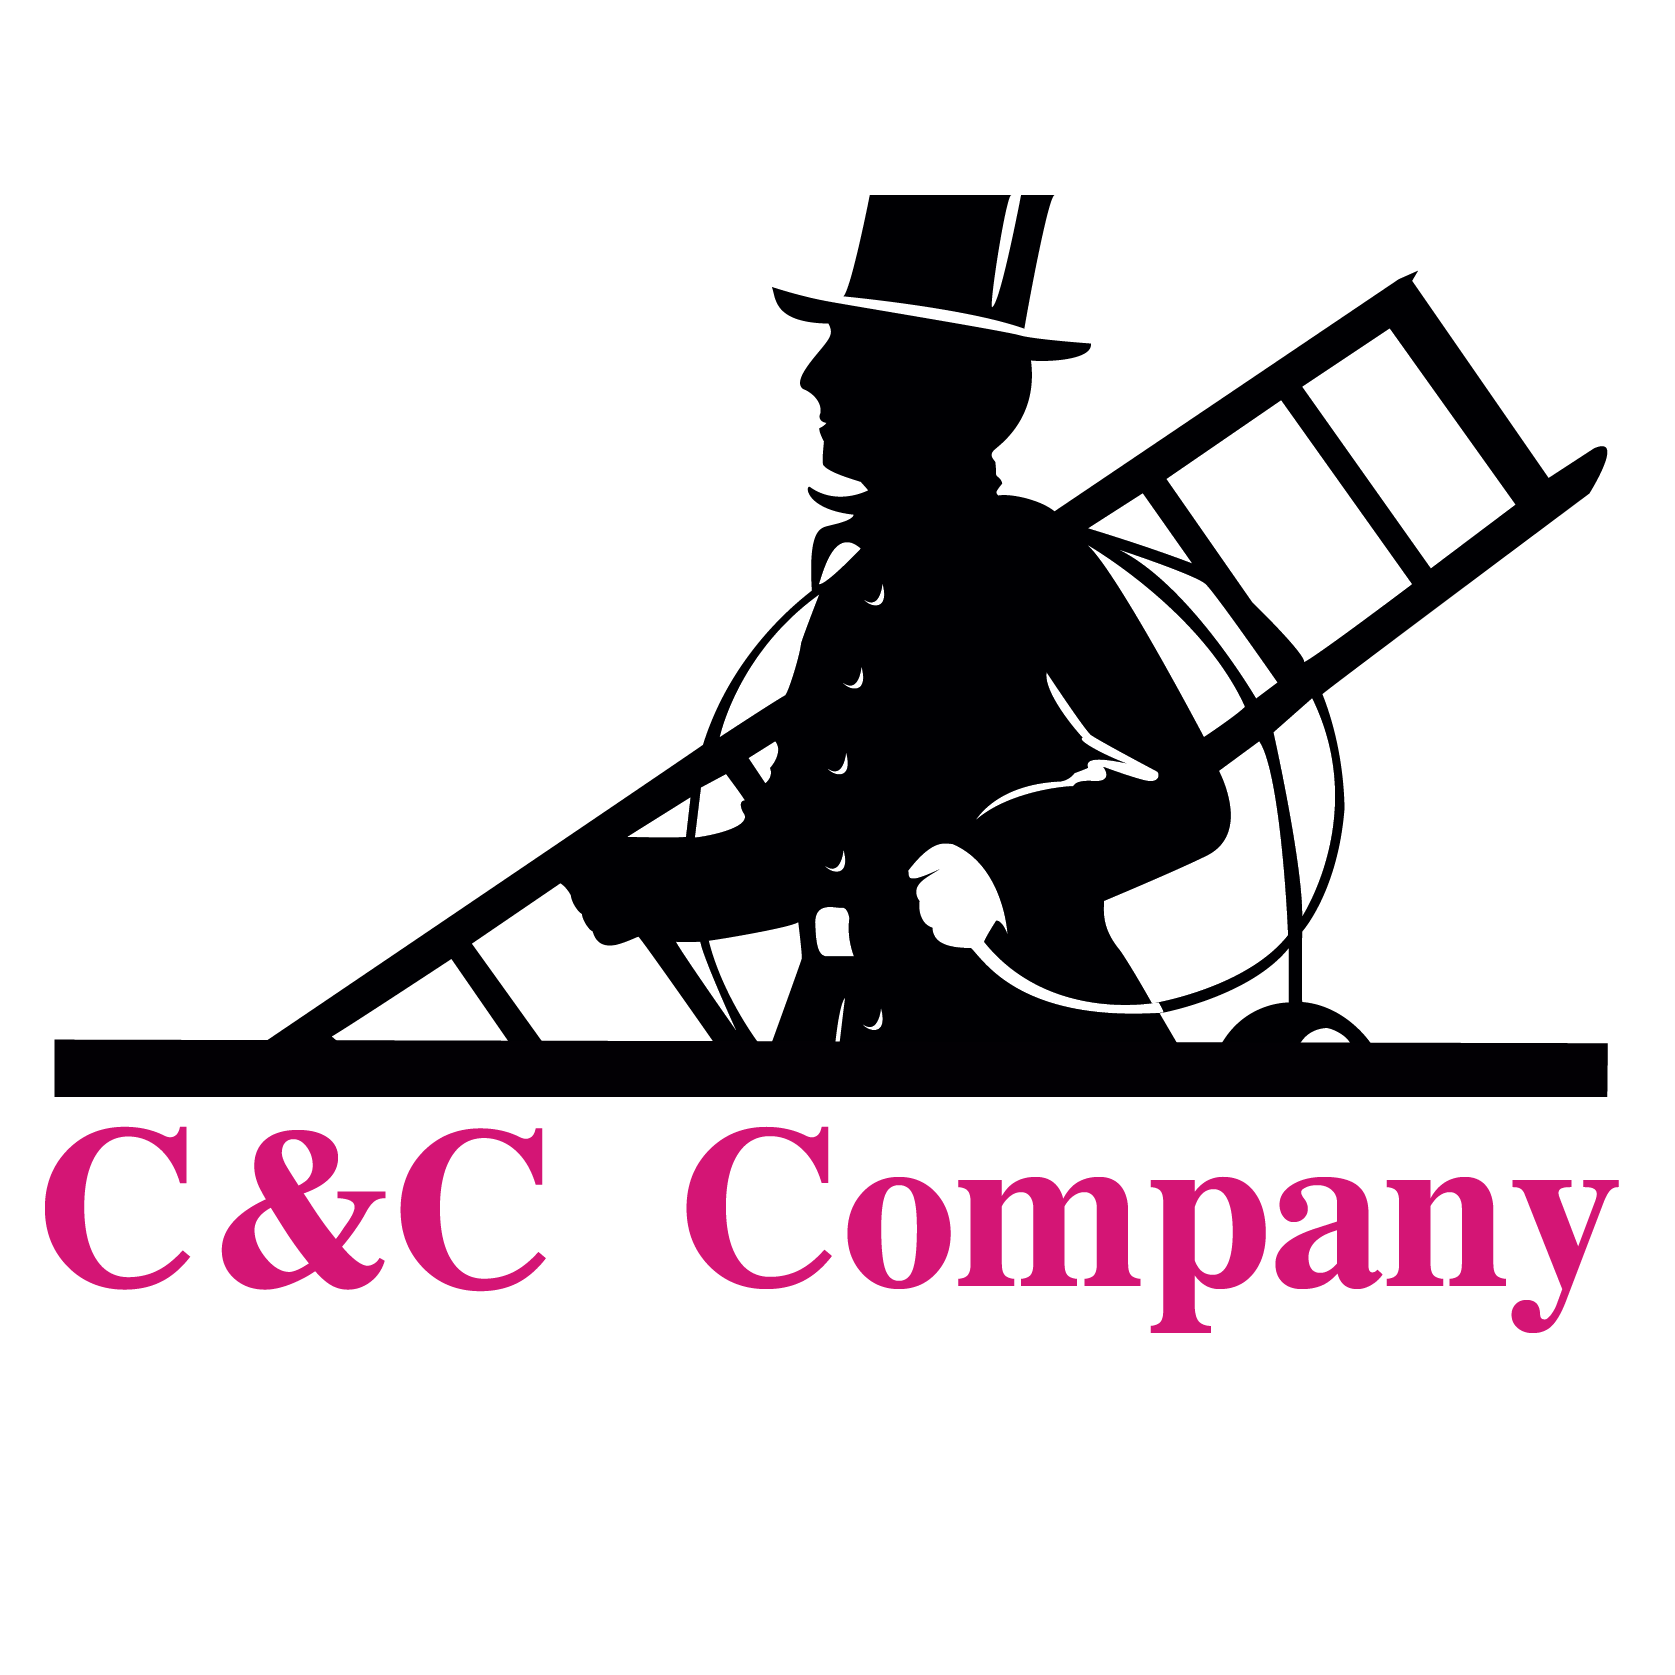 C & C Company Chimney and Fireplace Pros